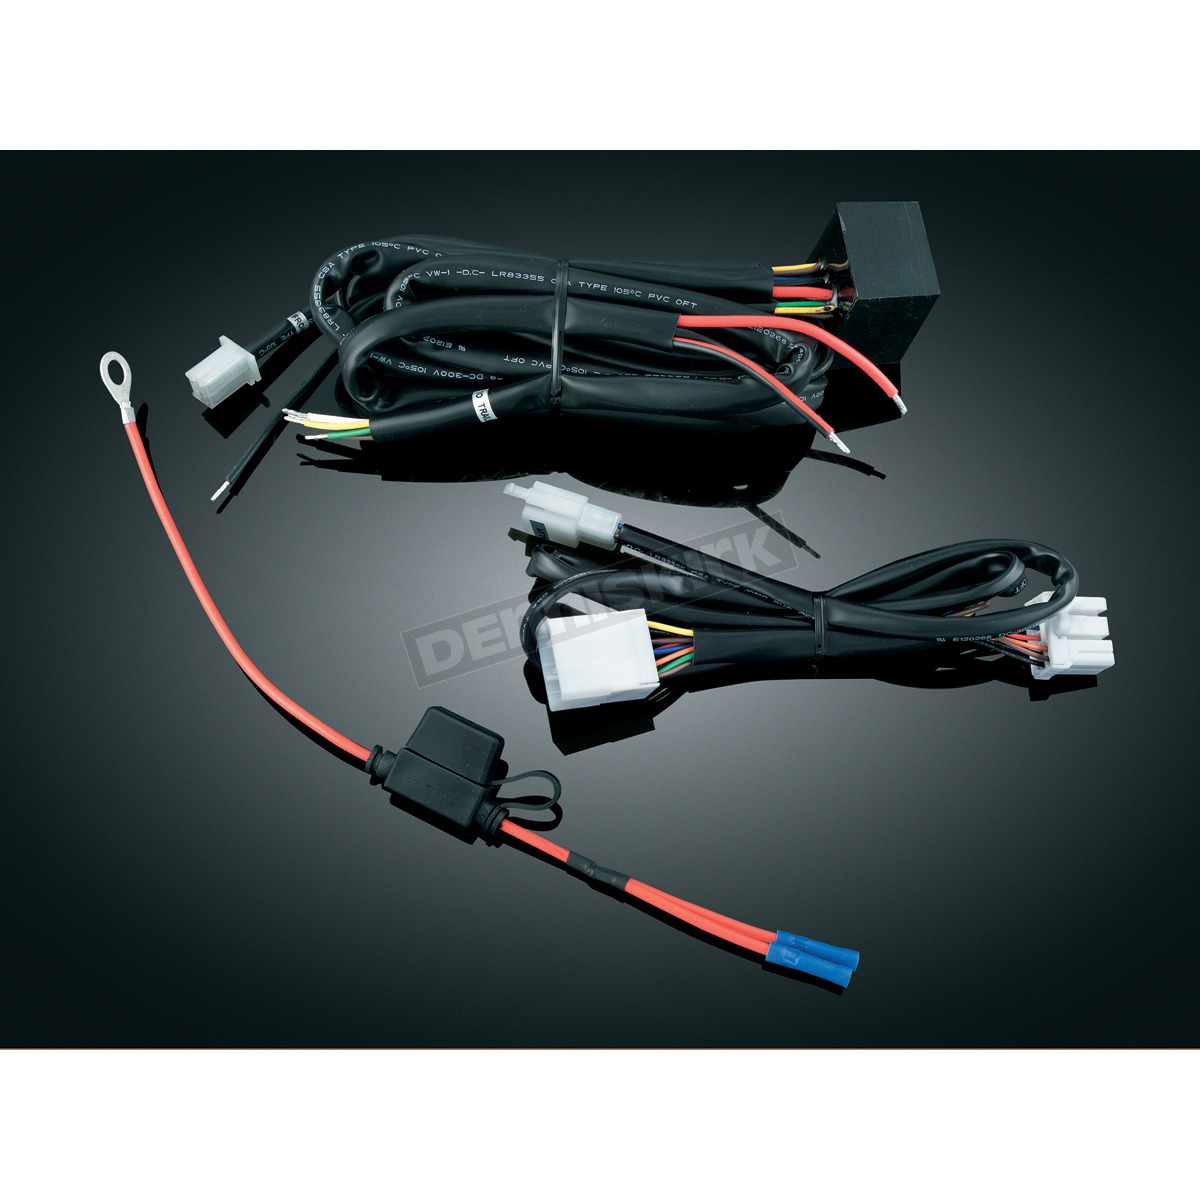 Harley Davidson Wiring Harness Kit | Wiring Diagram on